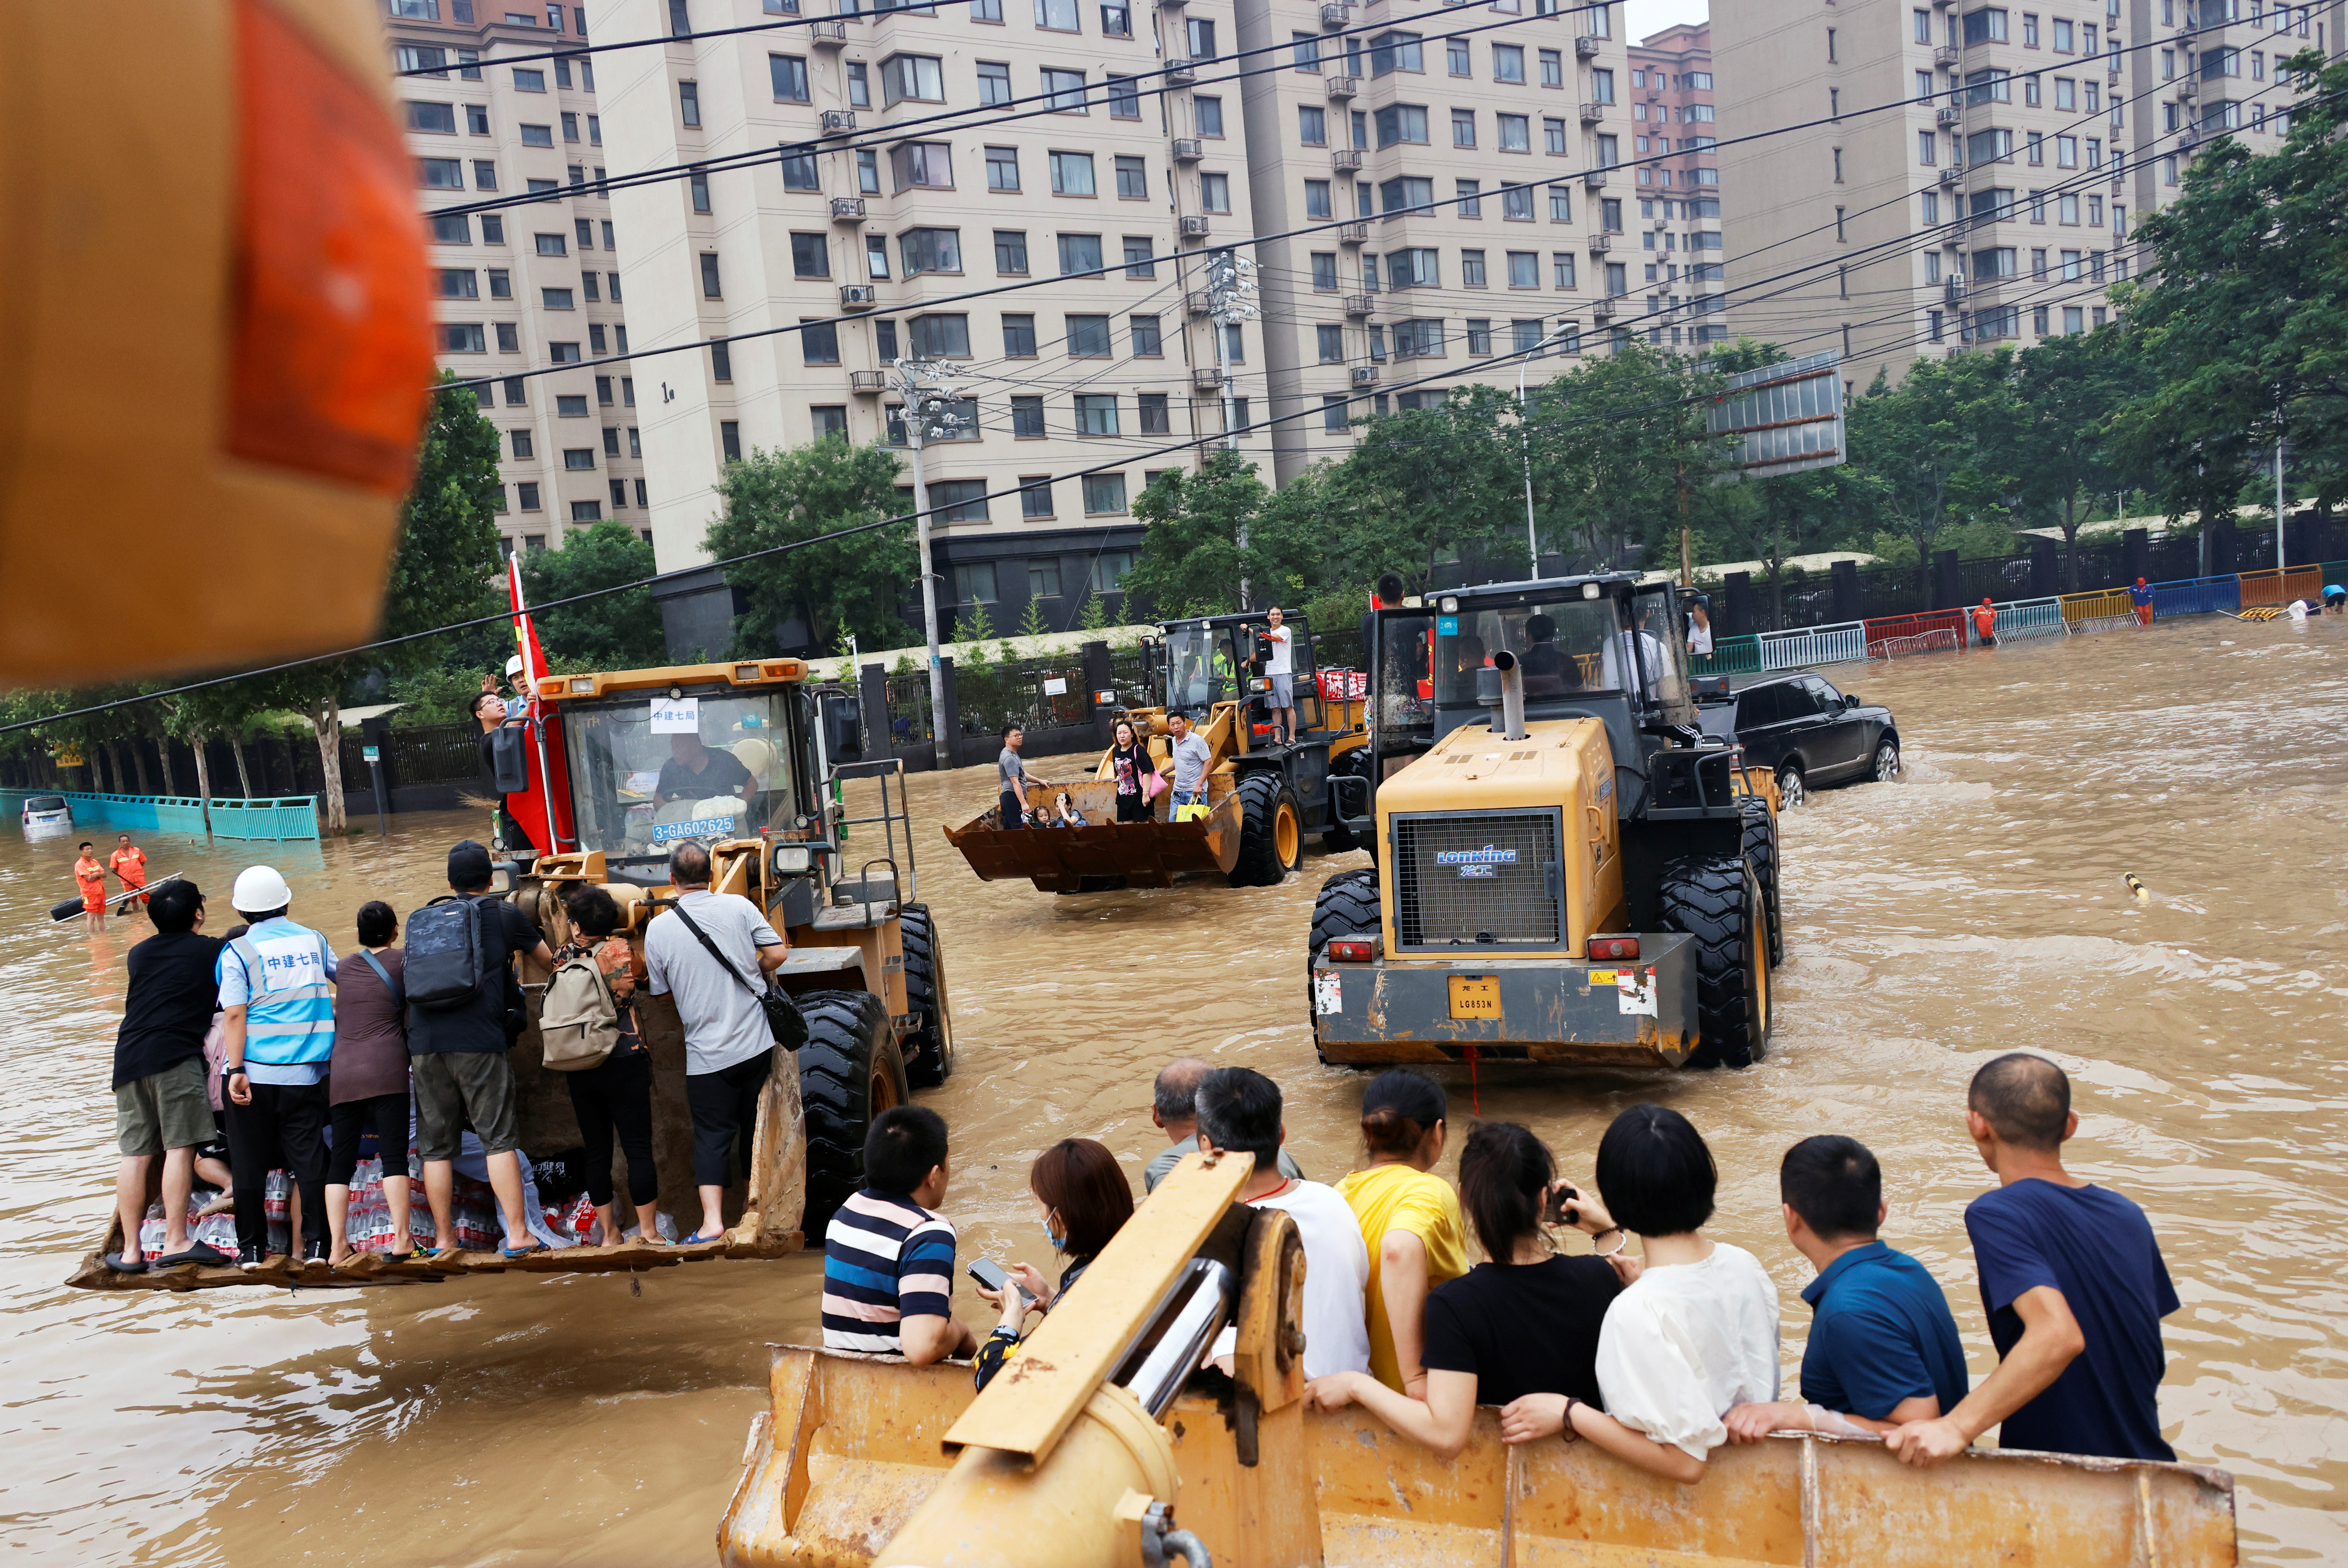 People ride on front loaders as they make their way through a flooded road following heavy rainfall in Zhengzhou, Henan province, China July 23, 2021. REUTERS/Aly Song